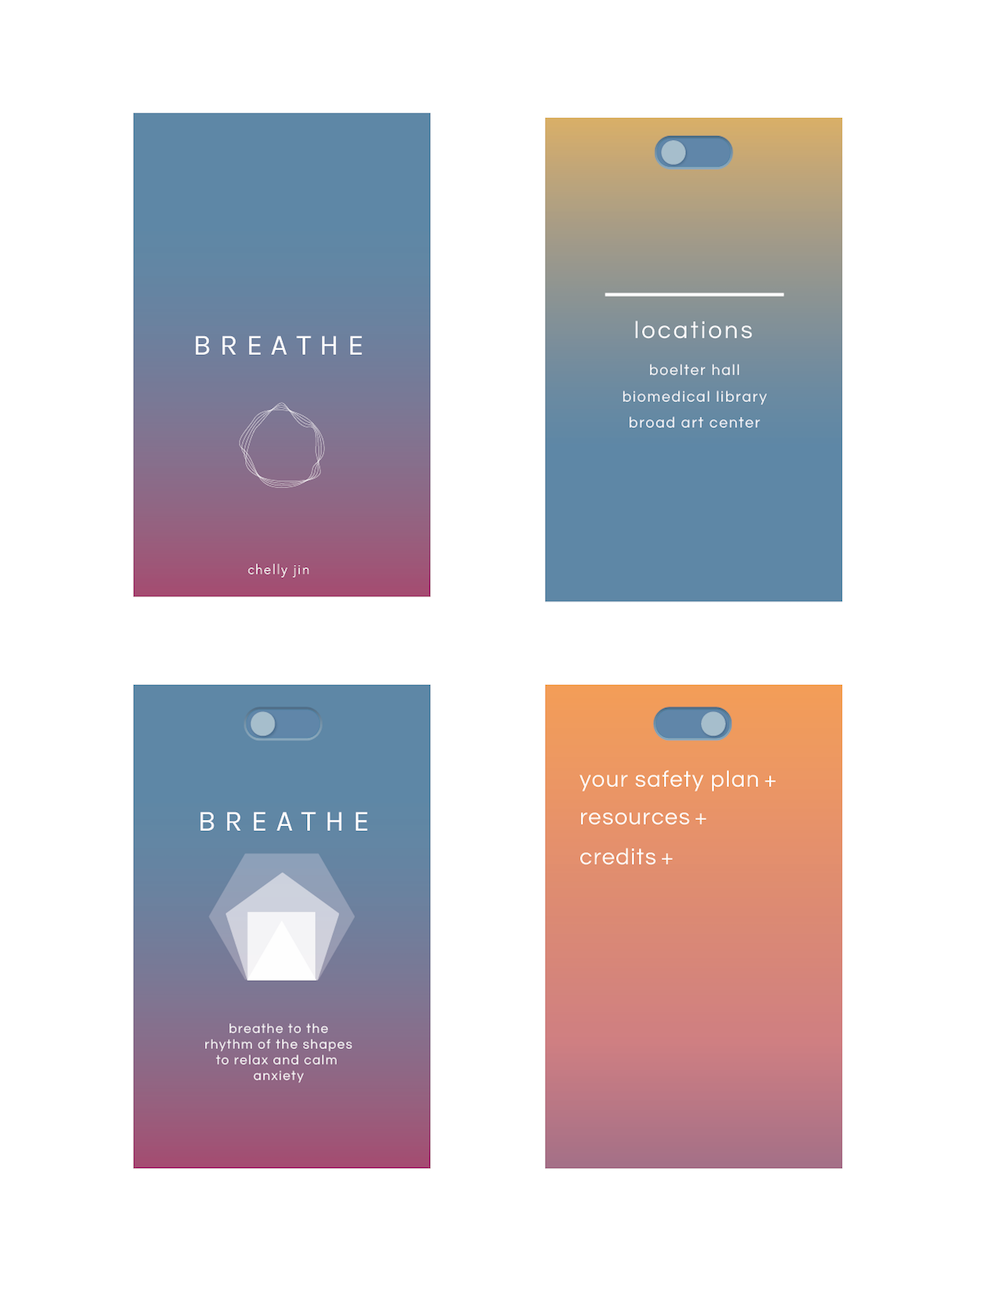 Breathe    BREATHE is a geo-locational meditation phone application for UCLA students, aimed to relieve anxiety and provide a location-based mindfulness meditation at three location points: Boelter Hall, Biomed Library, and Broad Art Center. Each meditation is site-specific, calling attention to specific sculptures or plants around the user, with correlating interactive elements and animations.